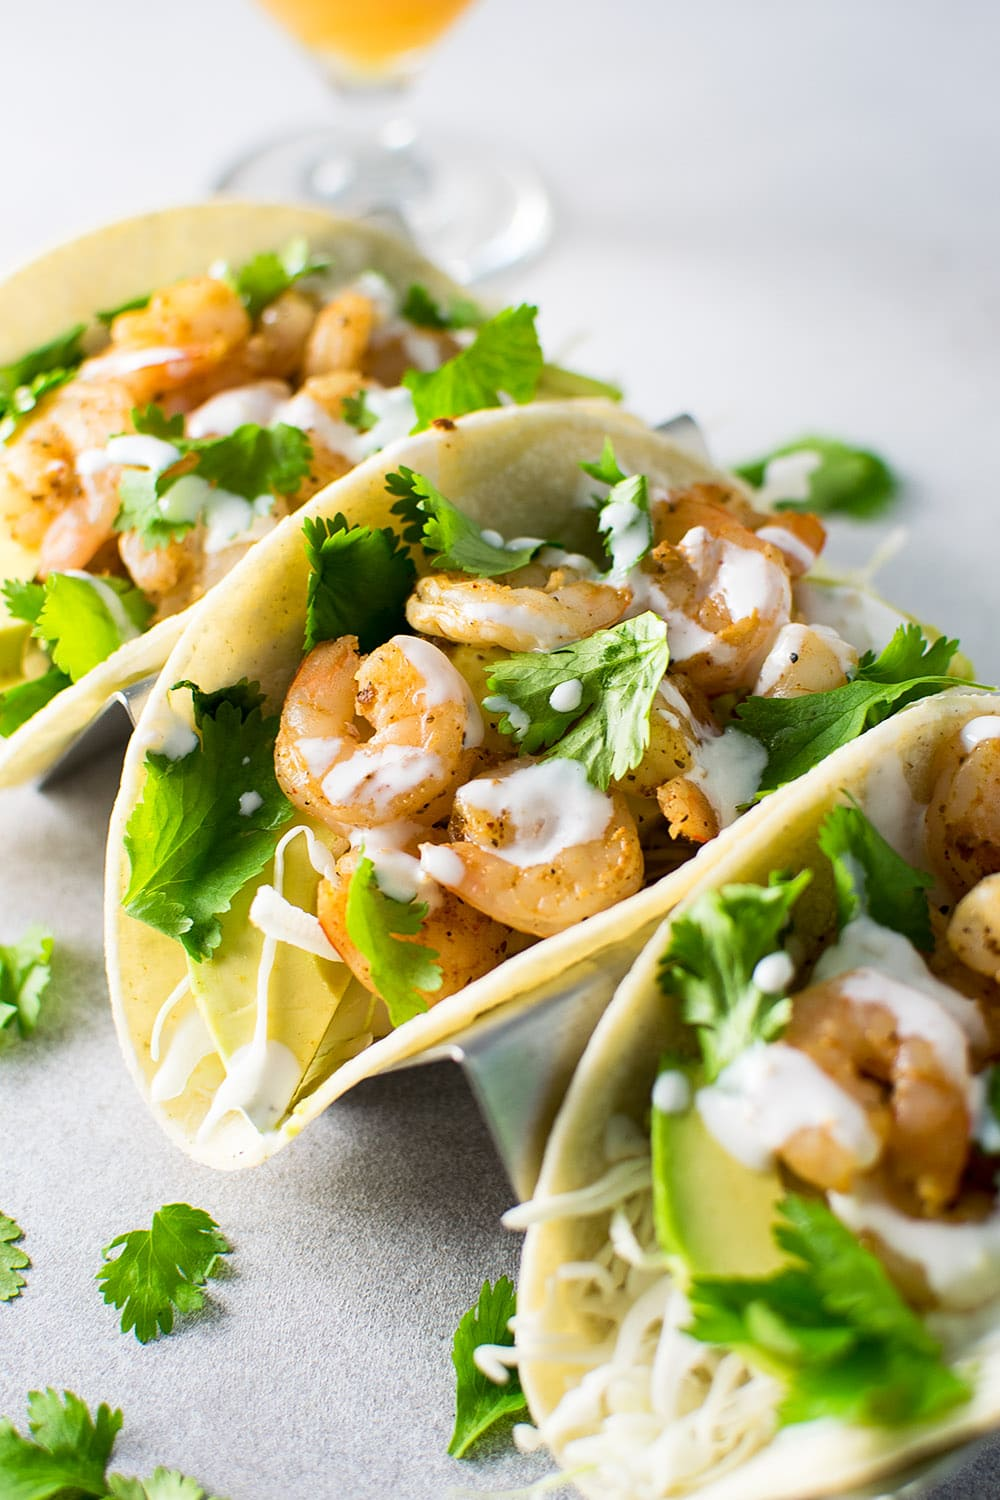 Spicy Shrimp Tacos with Creamy Lime Sauce